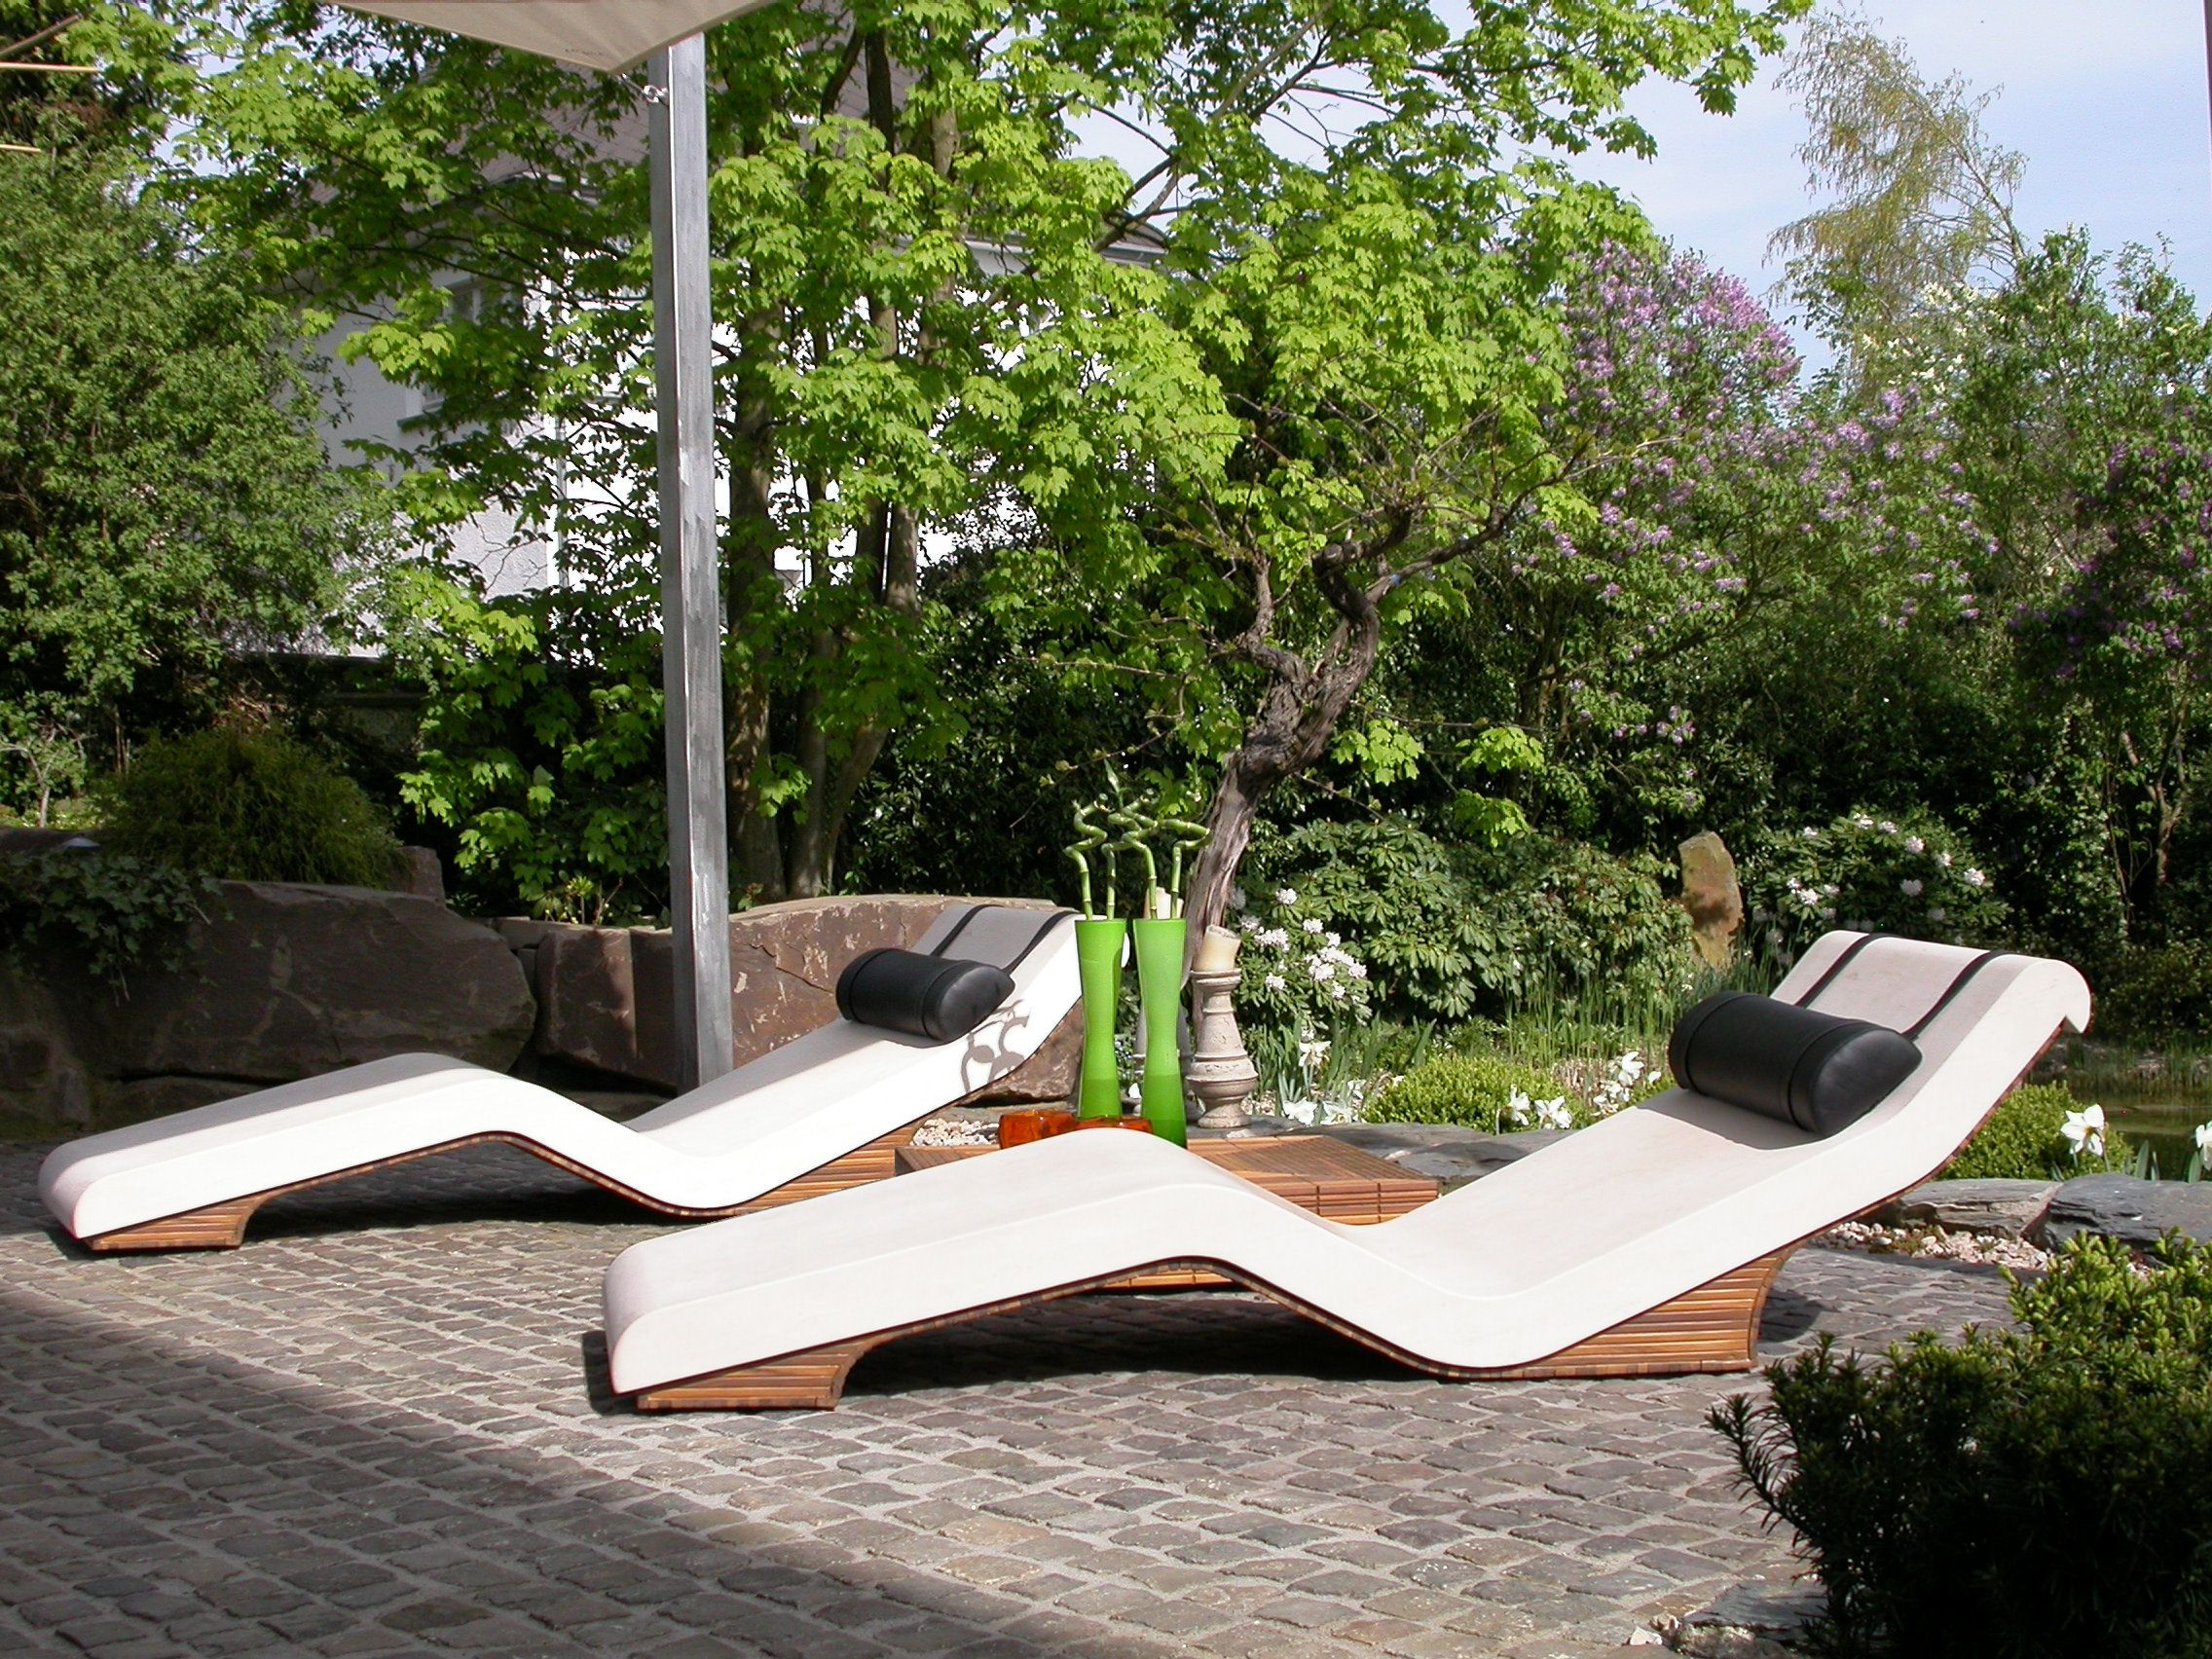 Luxury sun lounger from dealer in the uk leisurequip for Garden pool loungers